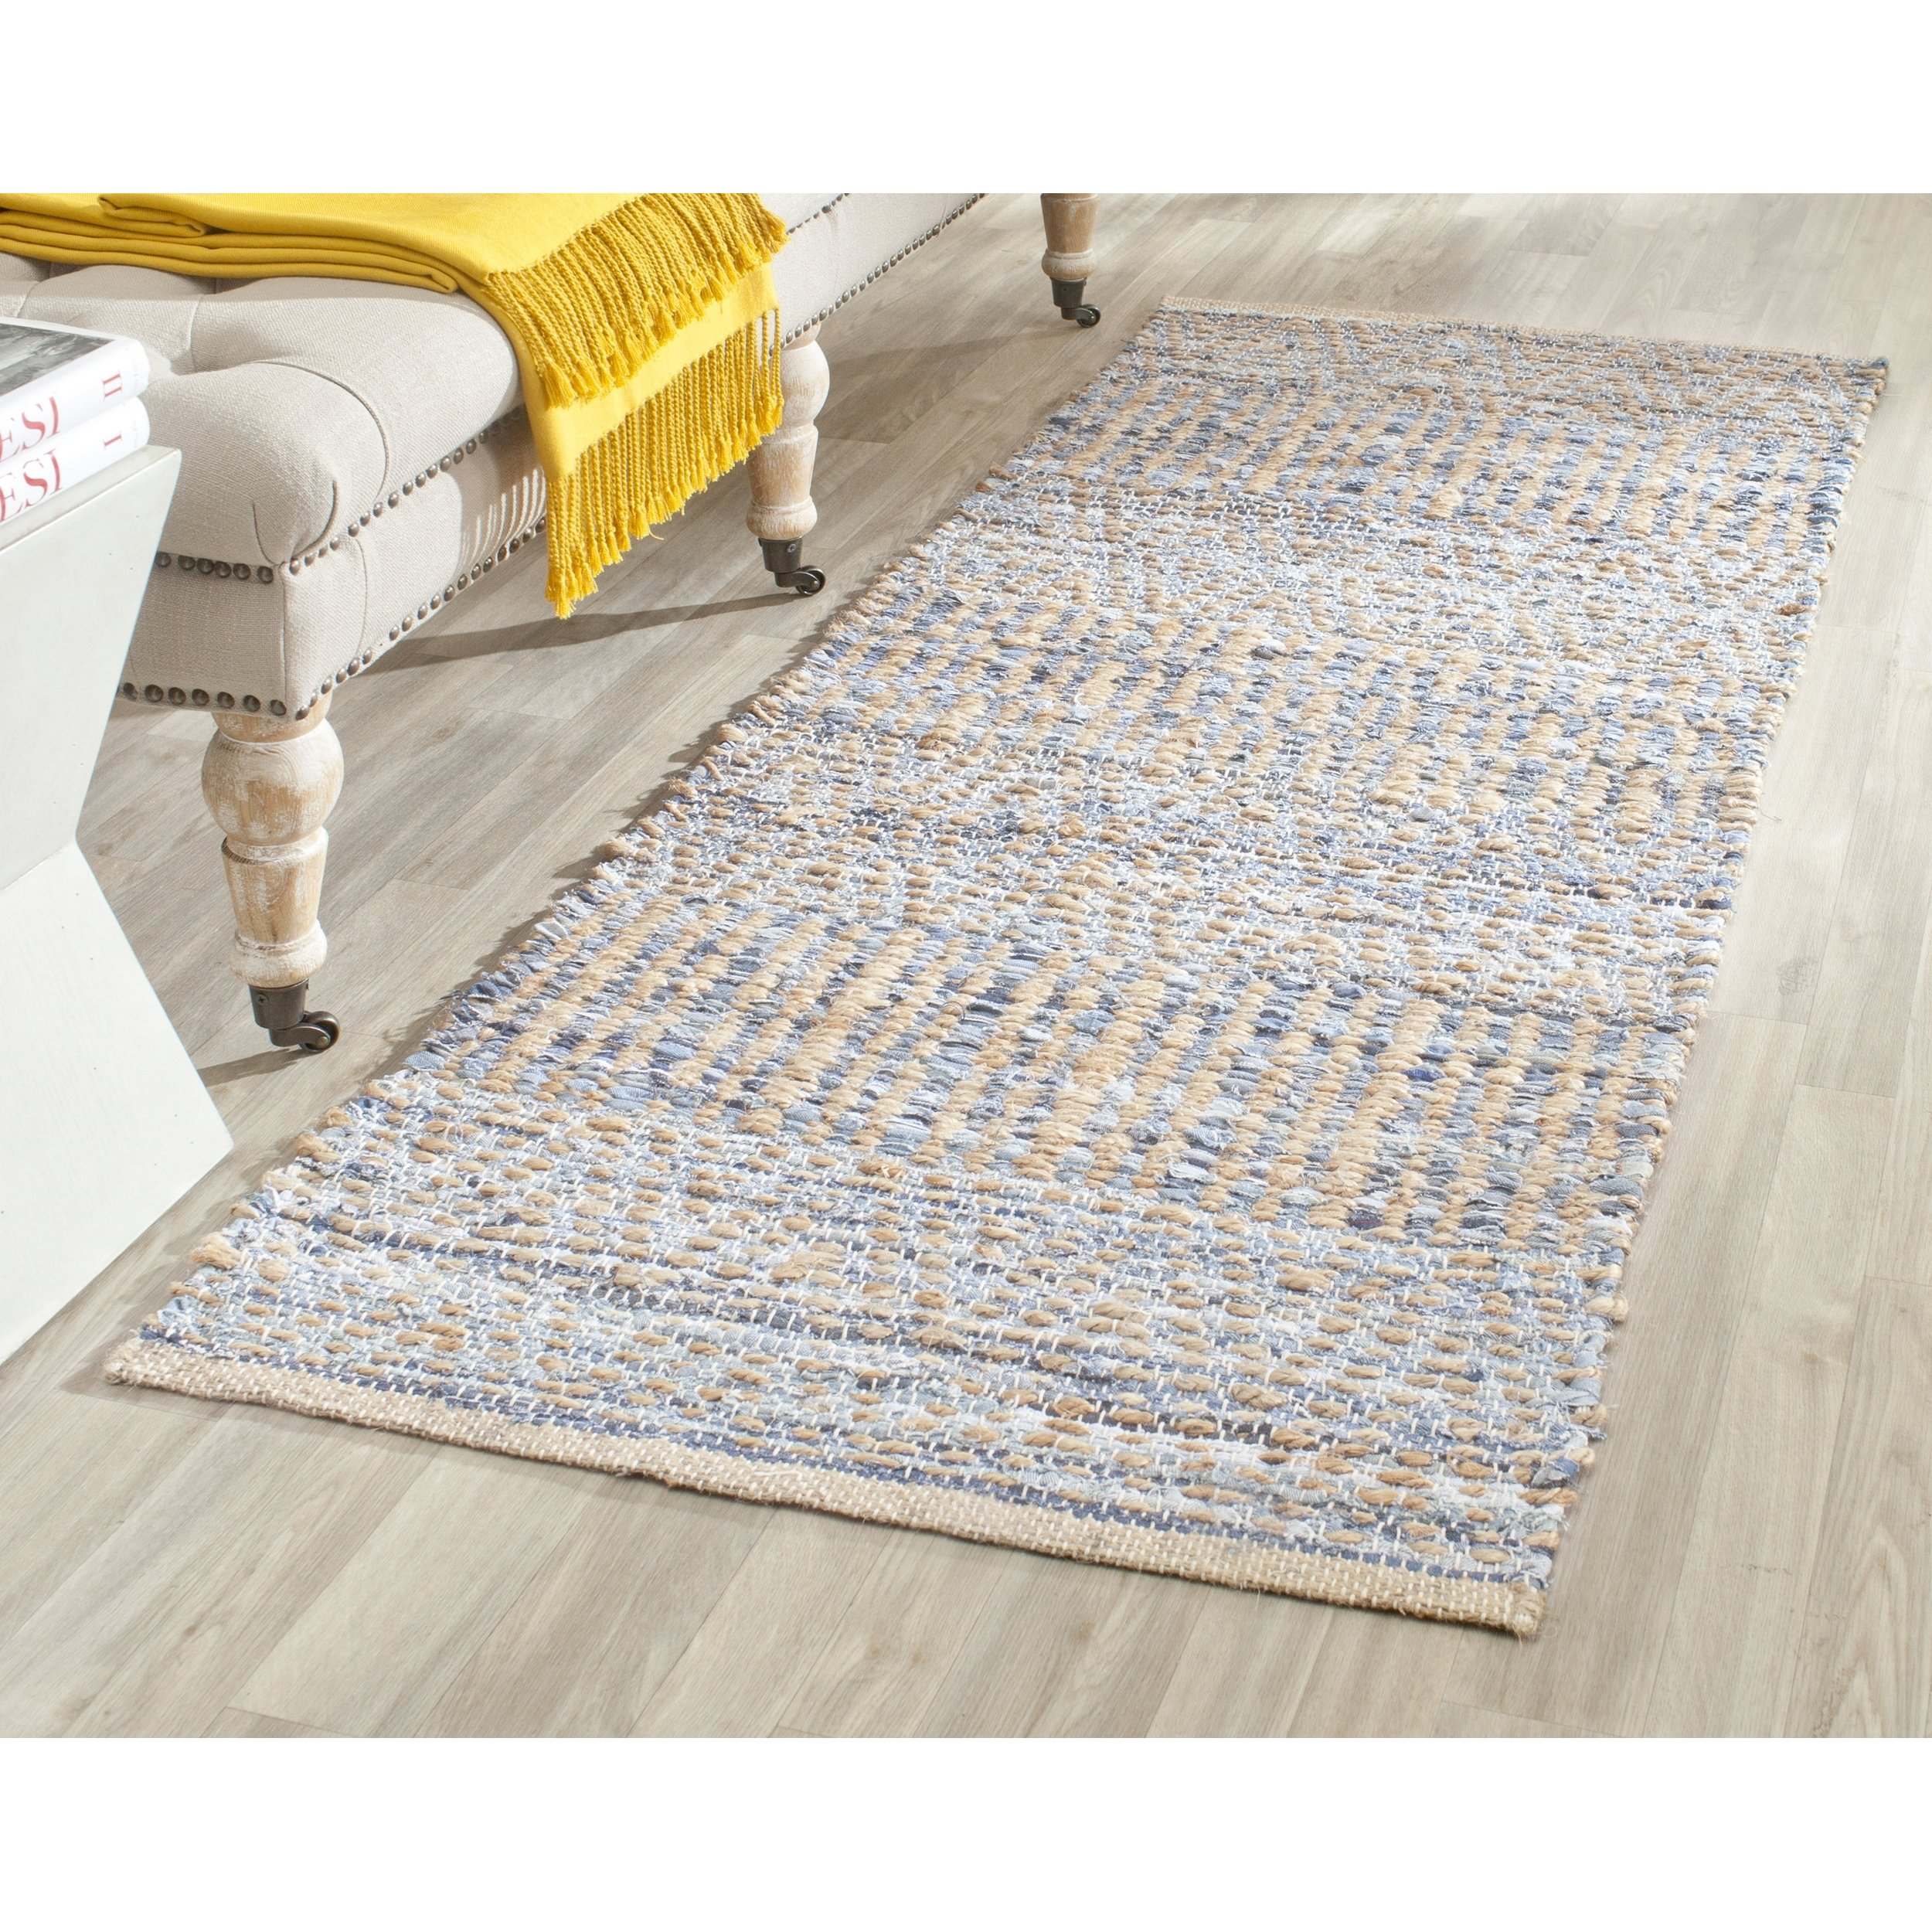 Safavieh Cape Cod Collection CAP353A Hand Woven Flatweave Natural and Blue Jute Runner (2'3'' x 14')